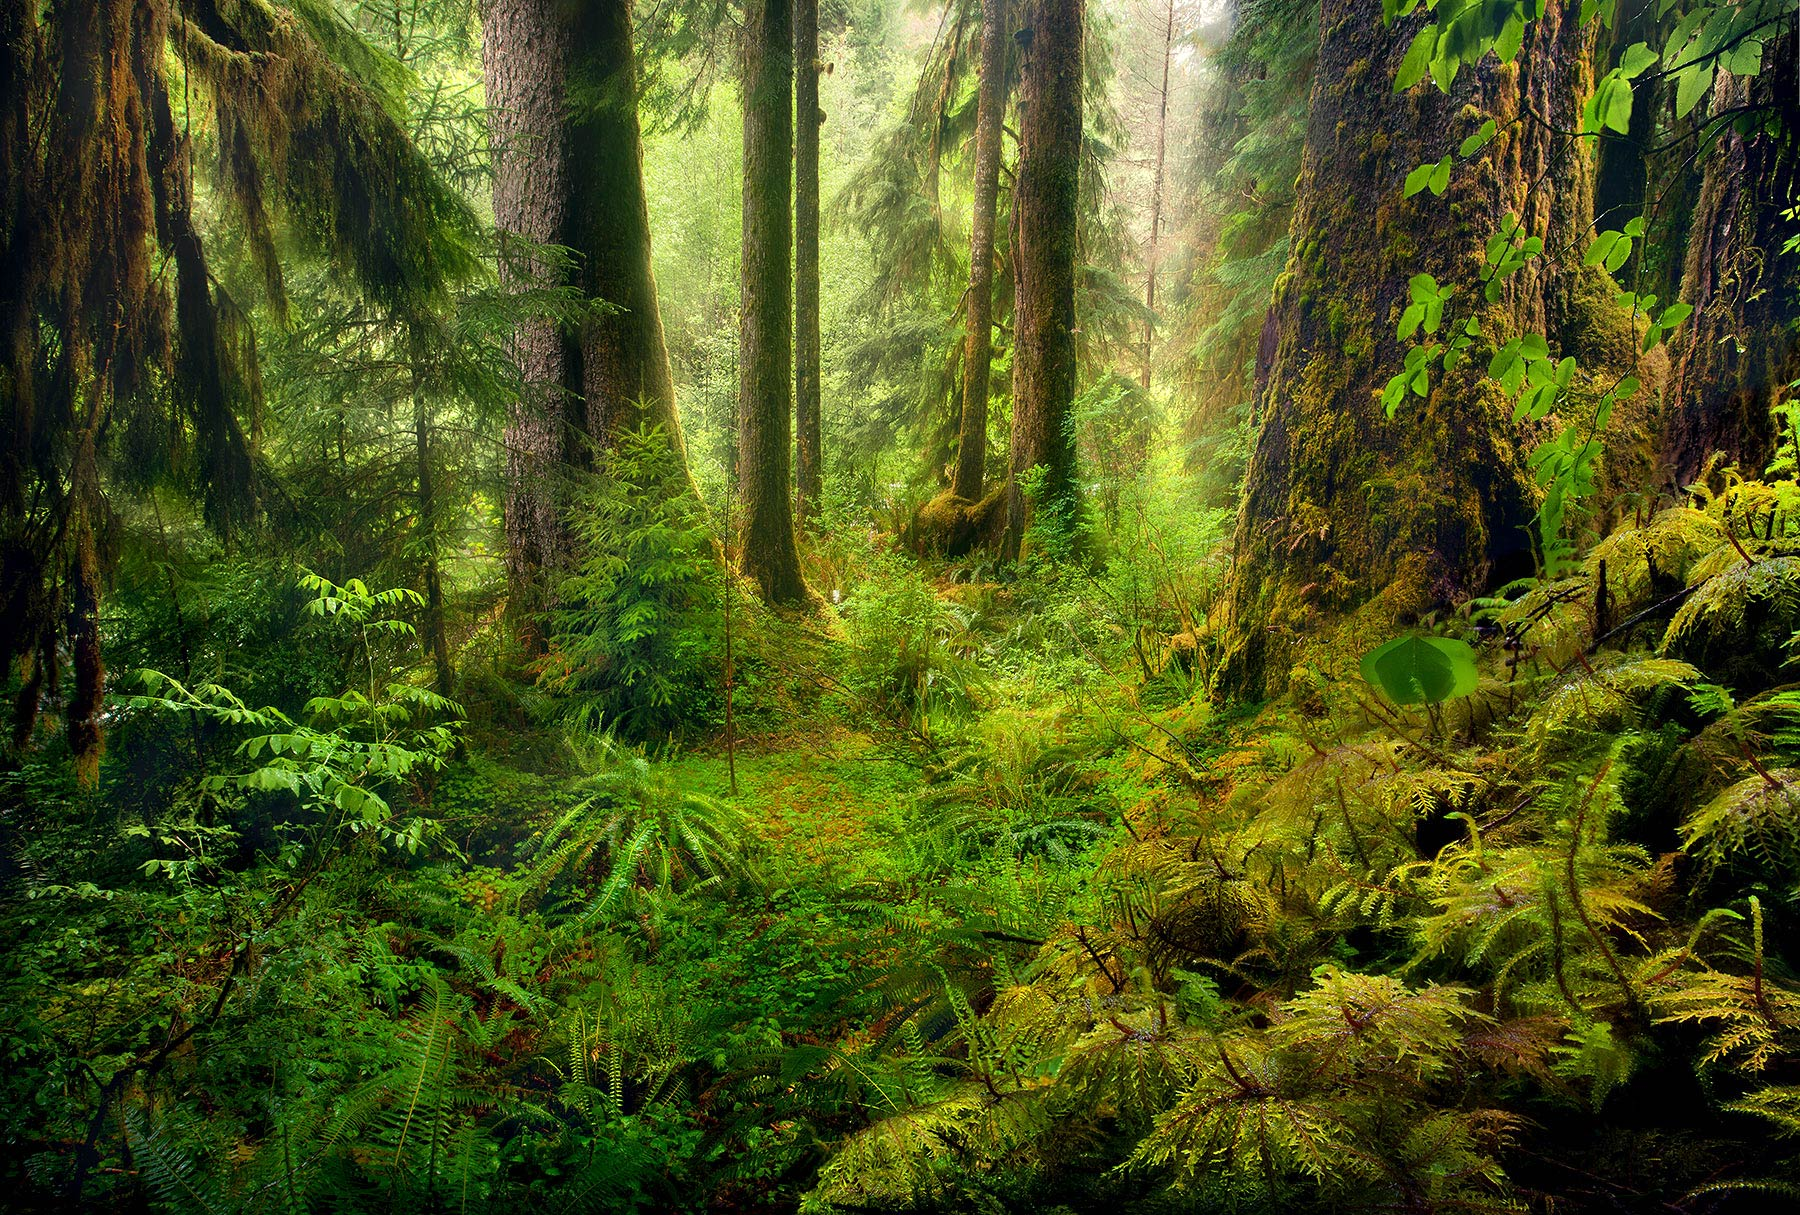 Misty, rainy, olympic, rainforest, photo